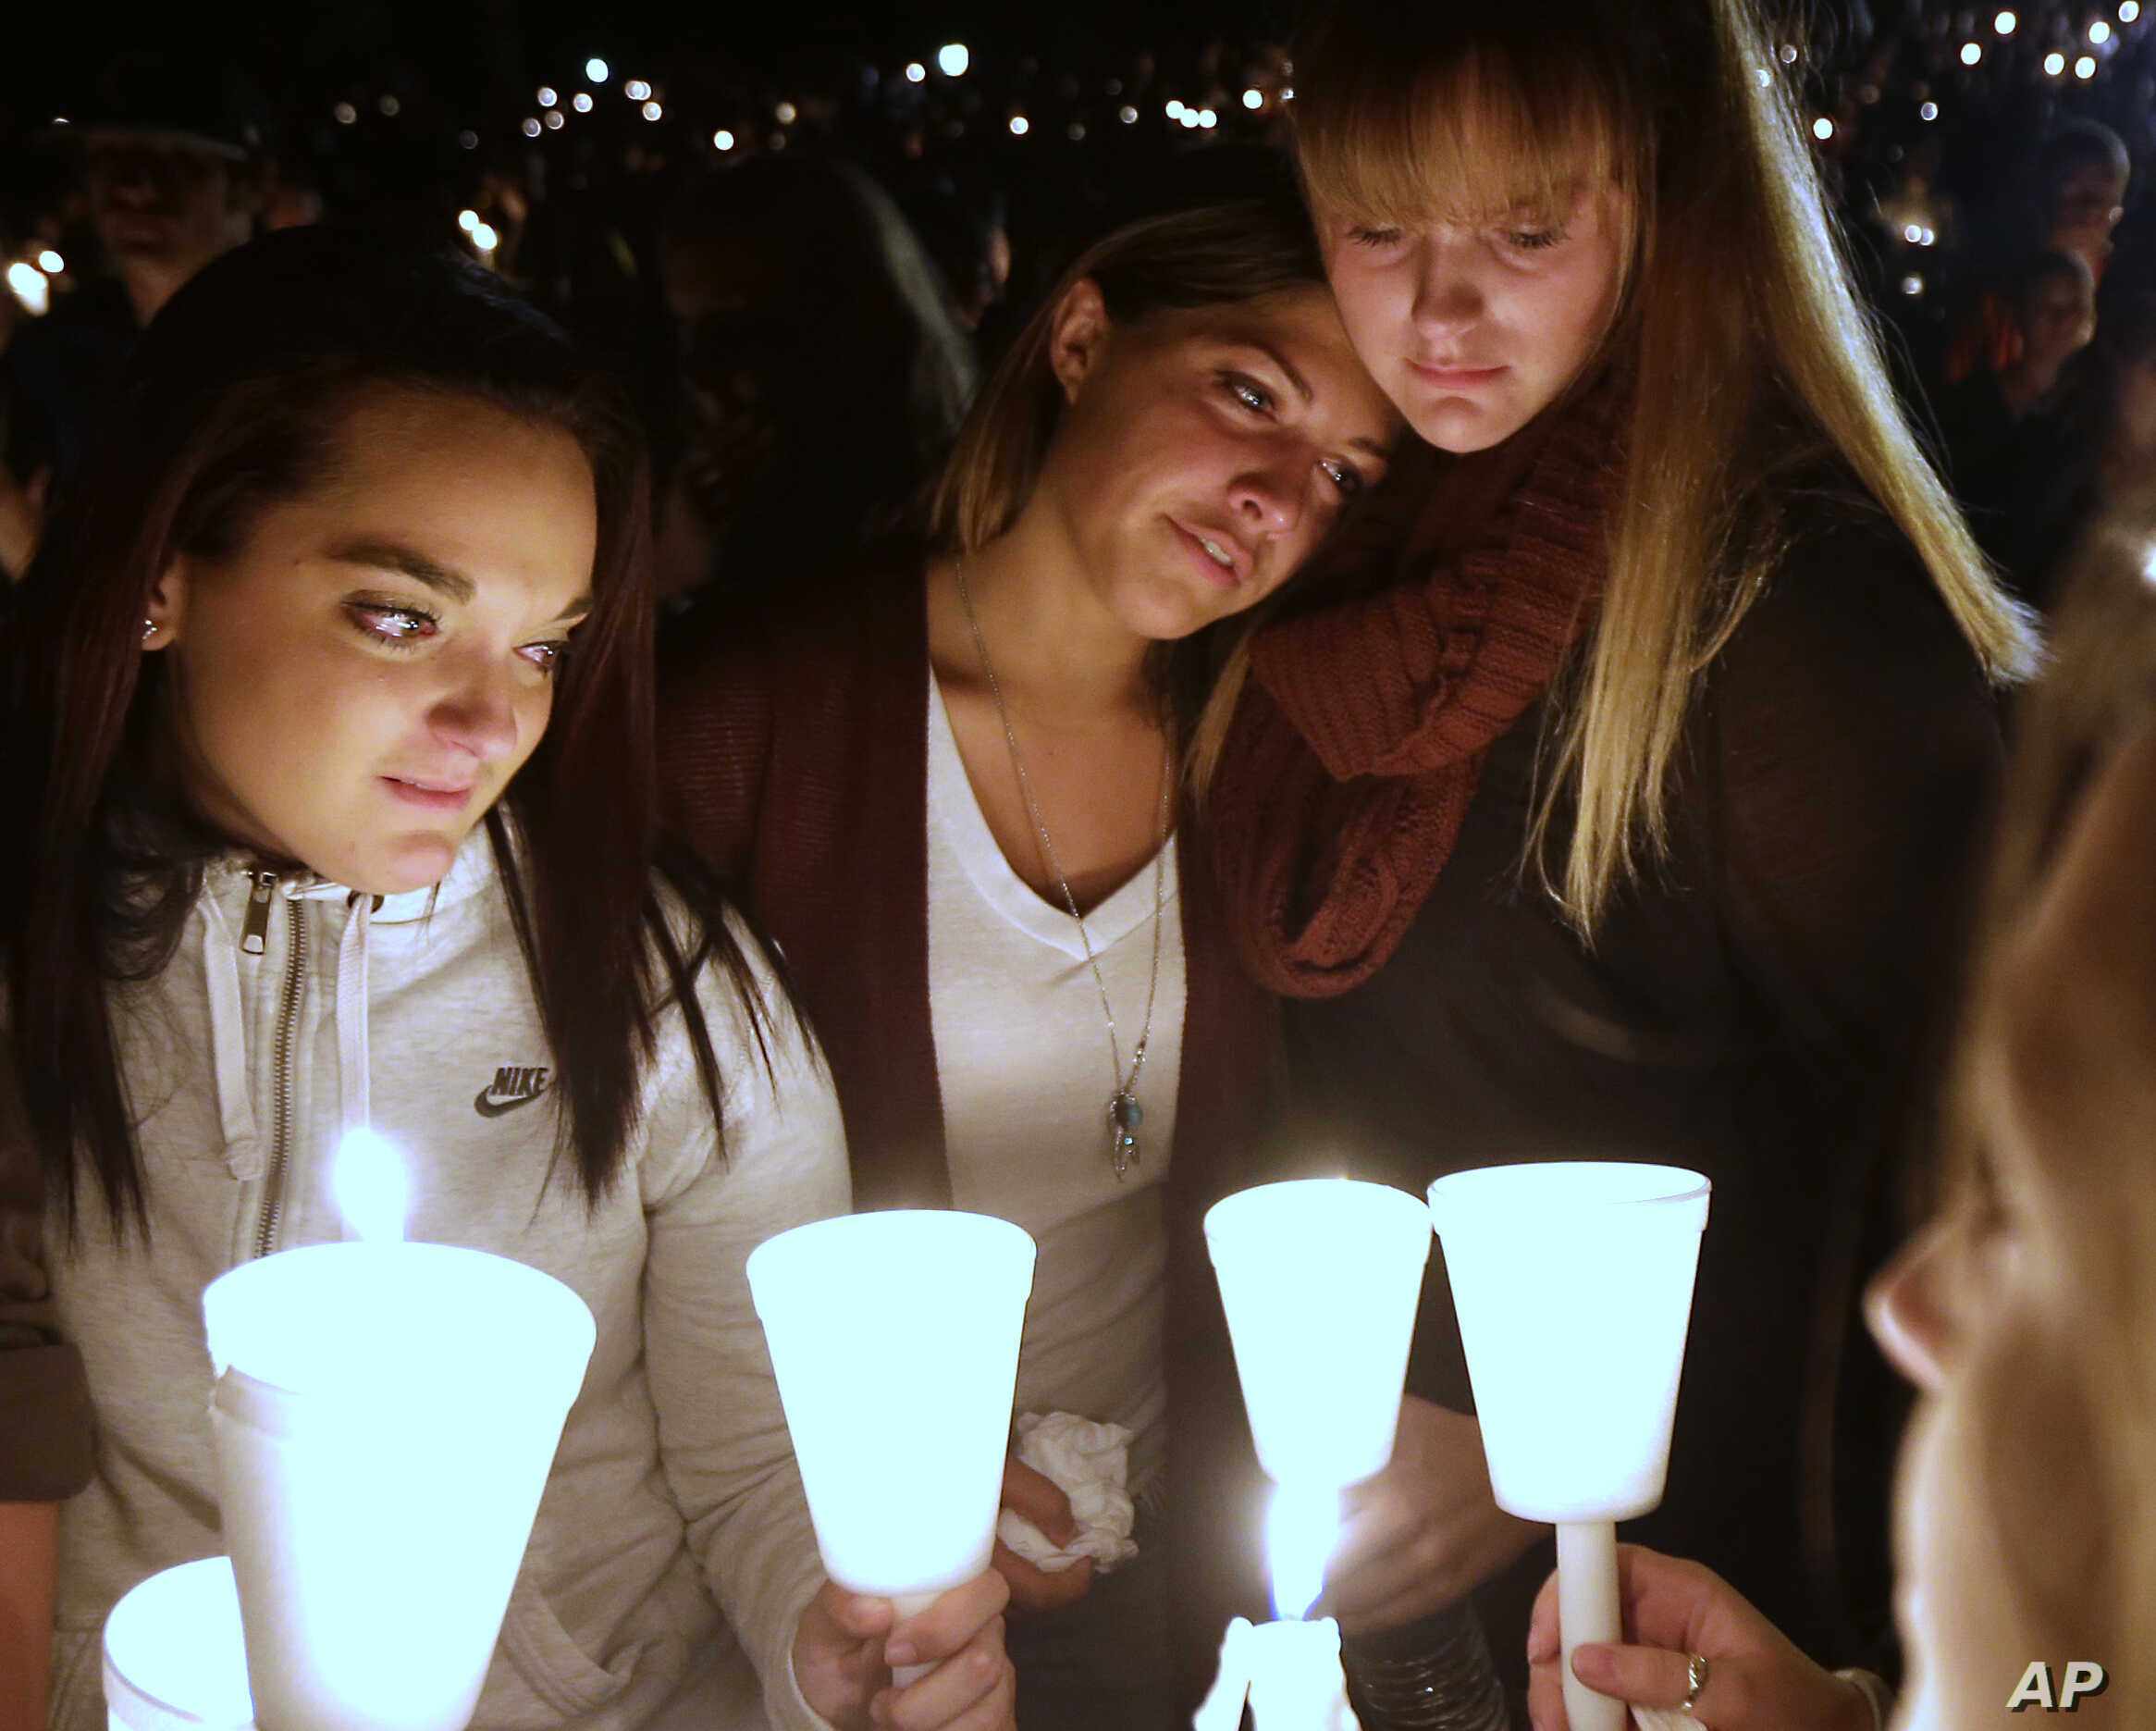 Umpqua Community College students Nicole Zamarripa, left, Kristen Sterner, center and Carrissa Welding, right, join others at Stewart Park, in Roseburg, Ore., for a candlelight vigil for those killed during a fatal shooting at the school, Oct. 1, 201...